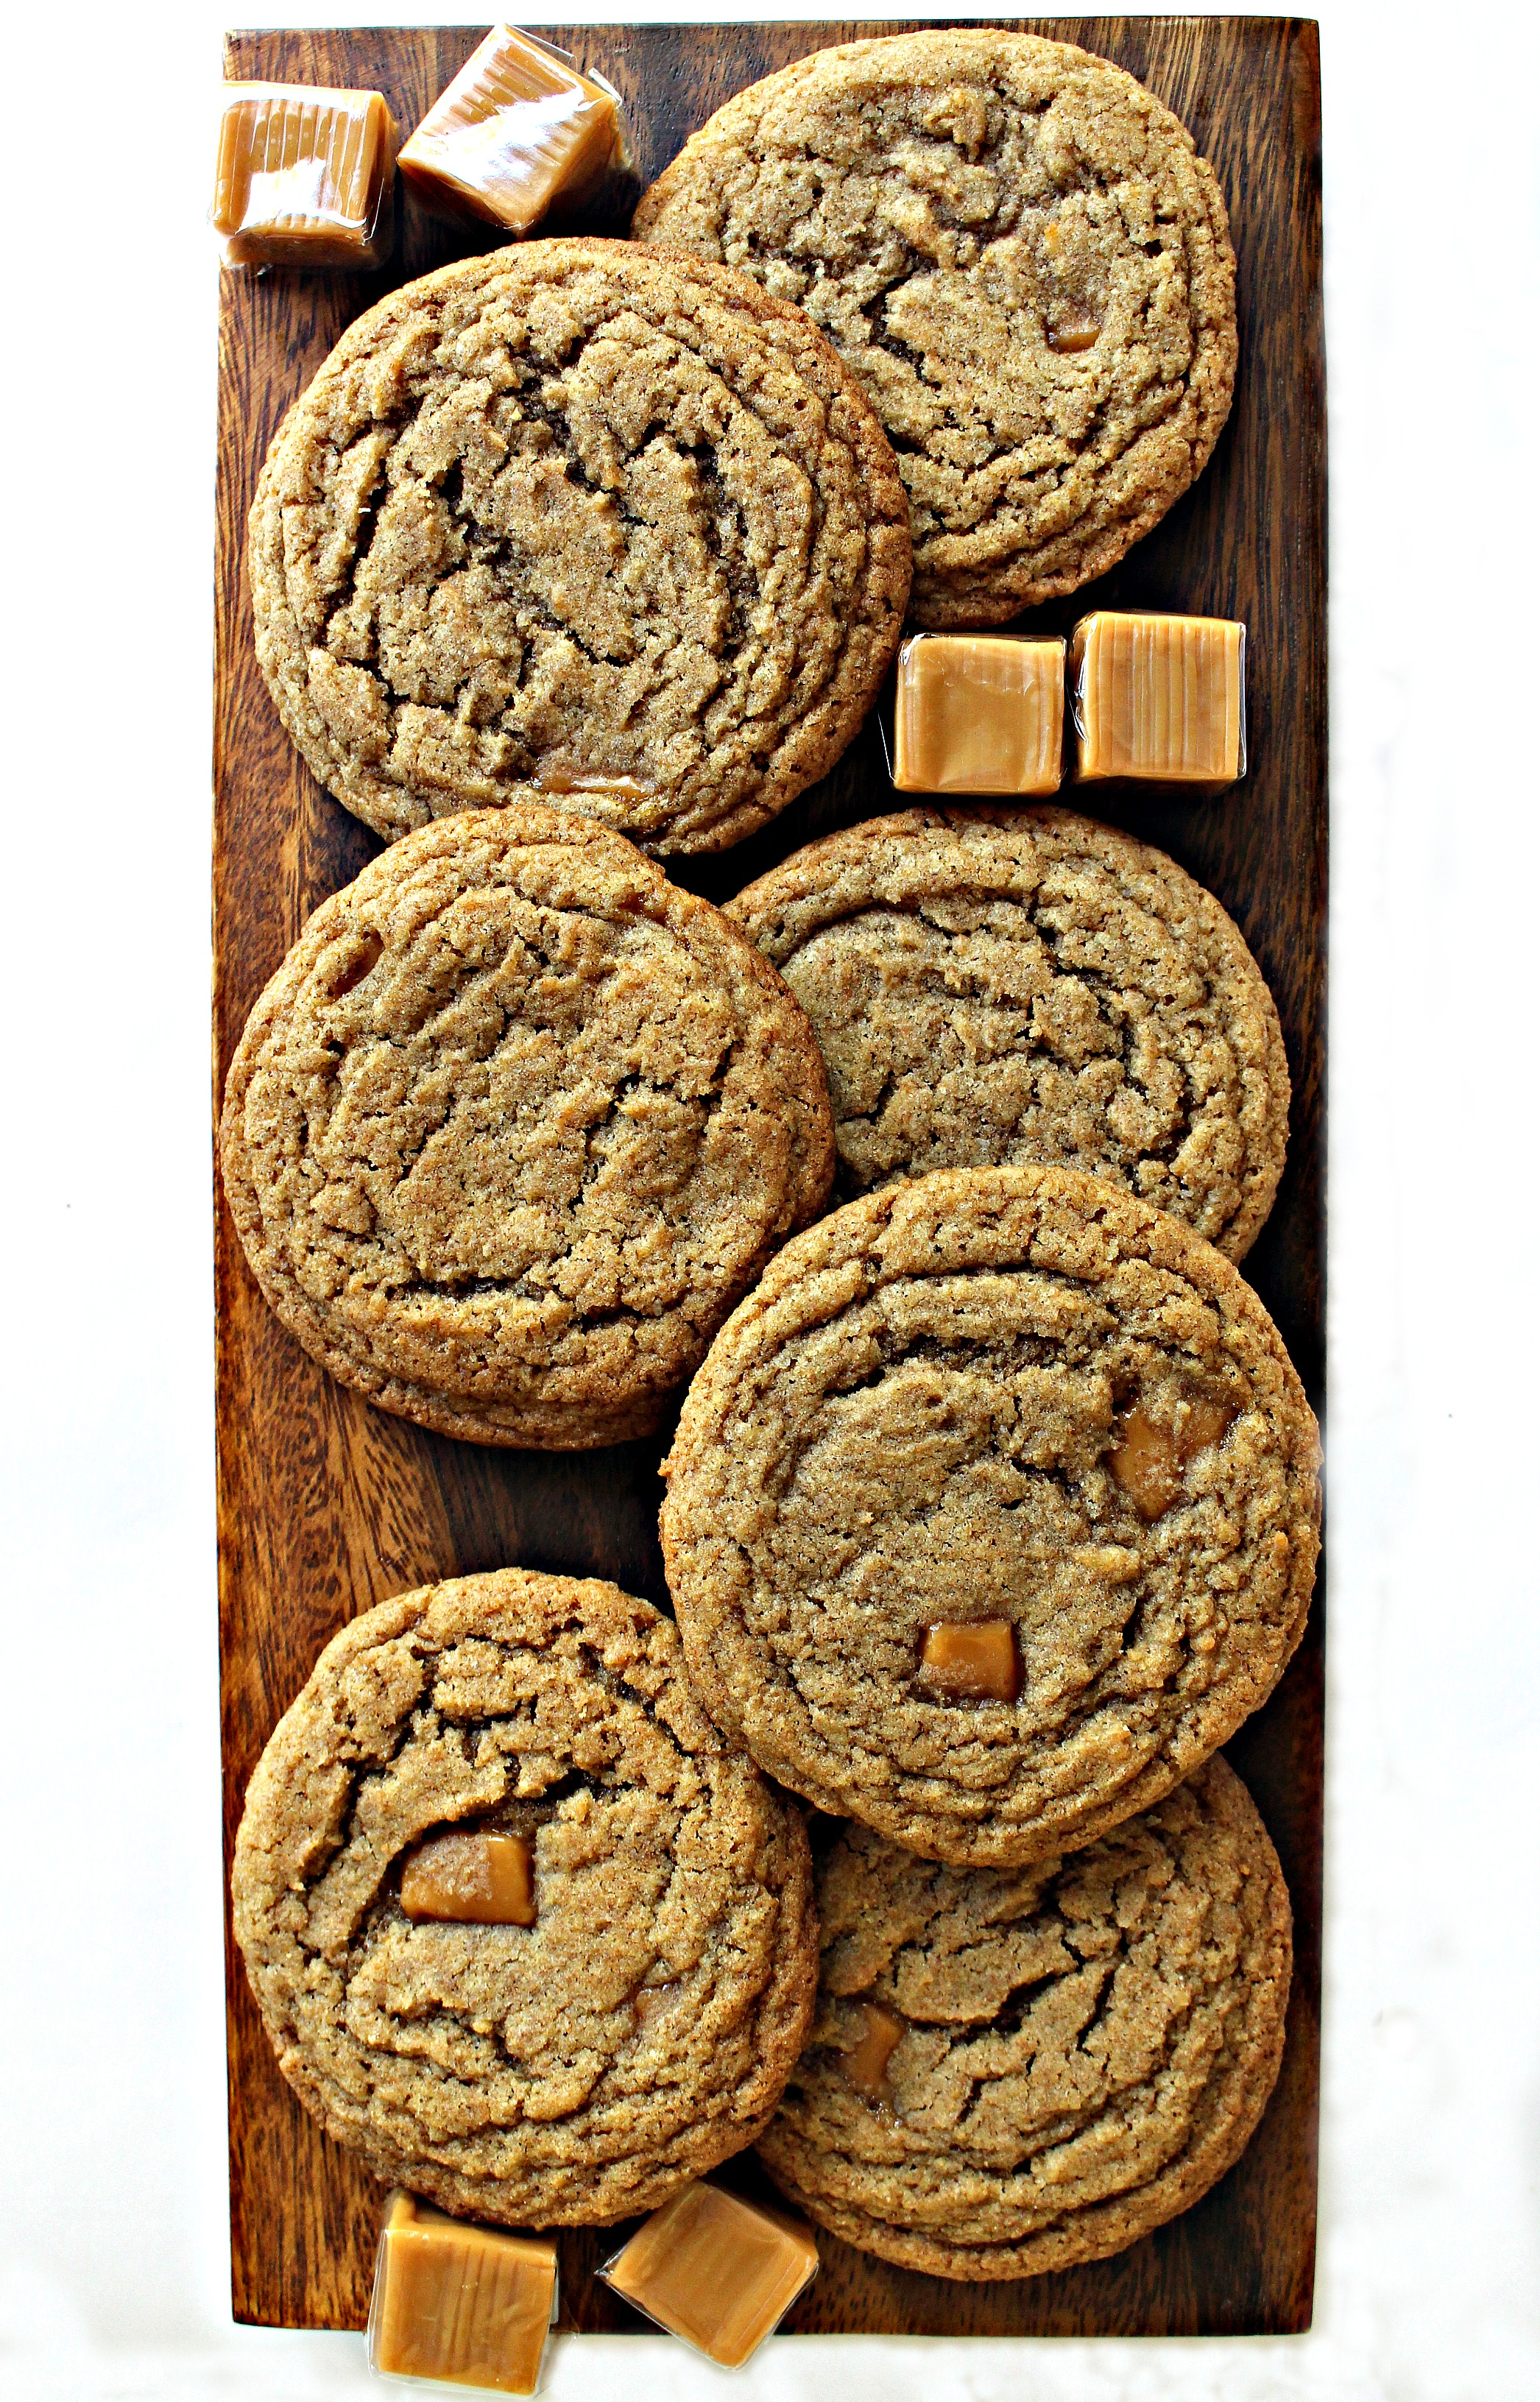 Thin, crinkled Whole Wheat Caramel Cookies on a wooden cutting board with caramel squares.